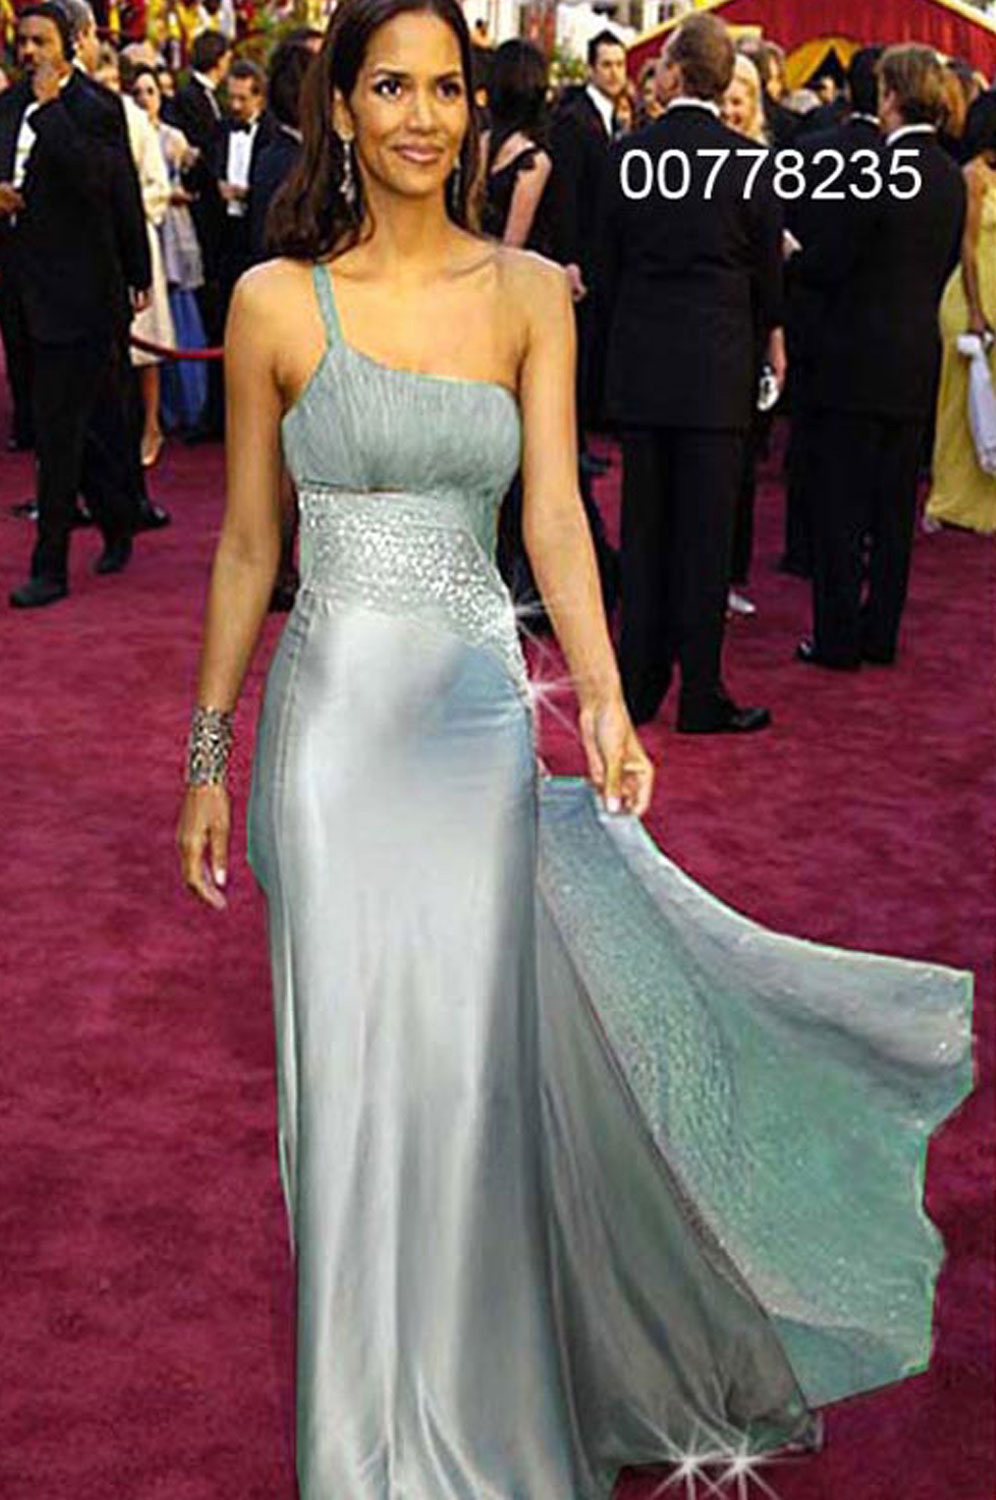 eDressit Halle Berry  Grey Party Evening Dress (00778235)